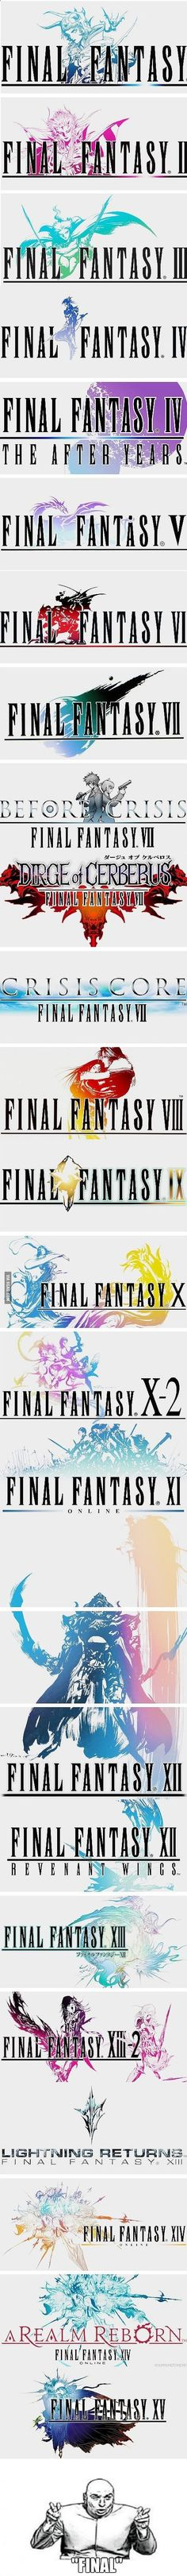 I am waiting to say Finally final final-fantasy